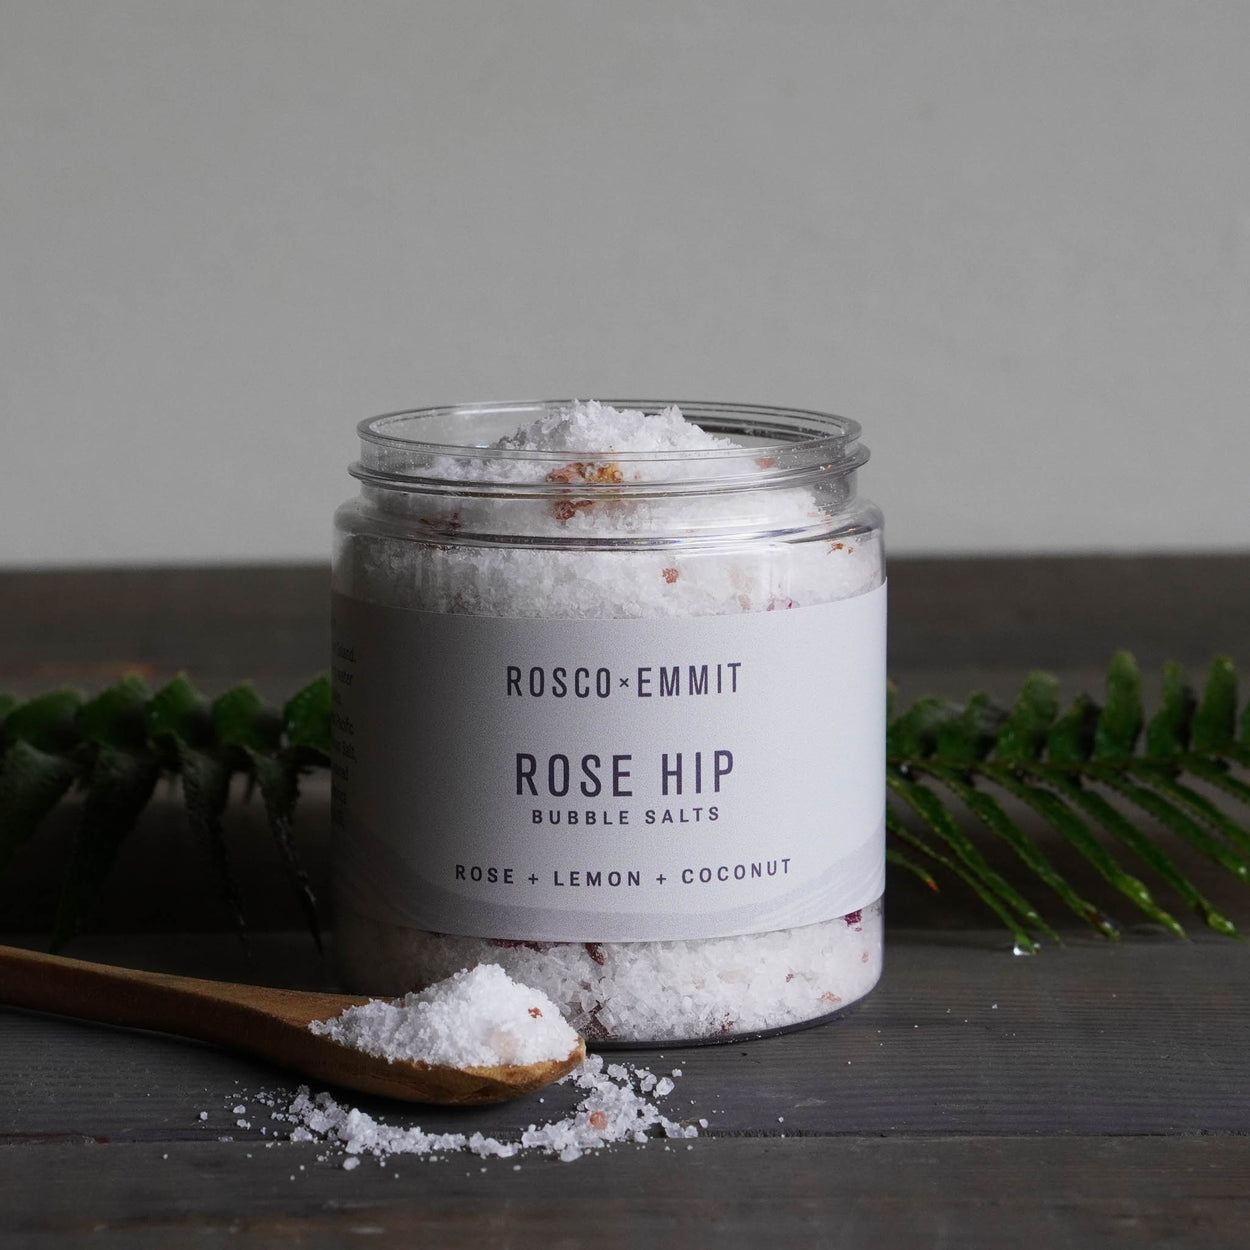 Rose Hip Bubble Salts